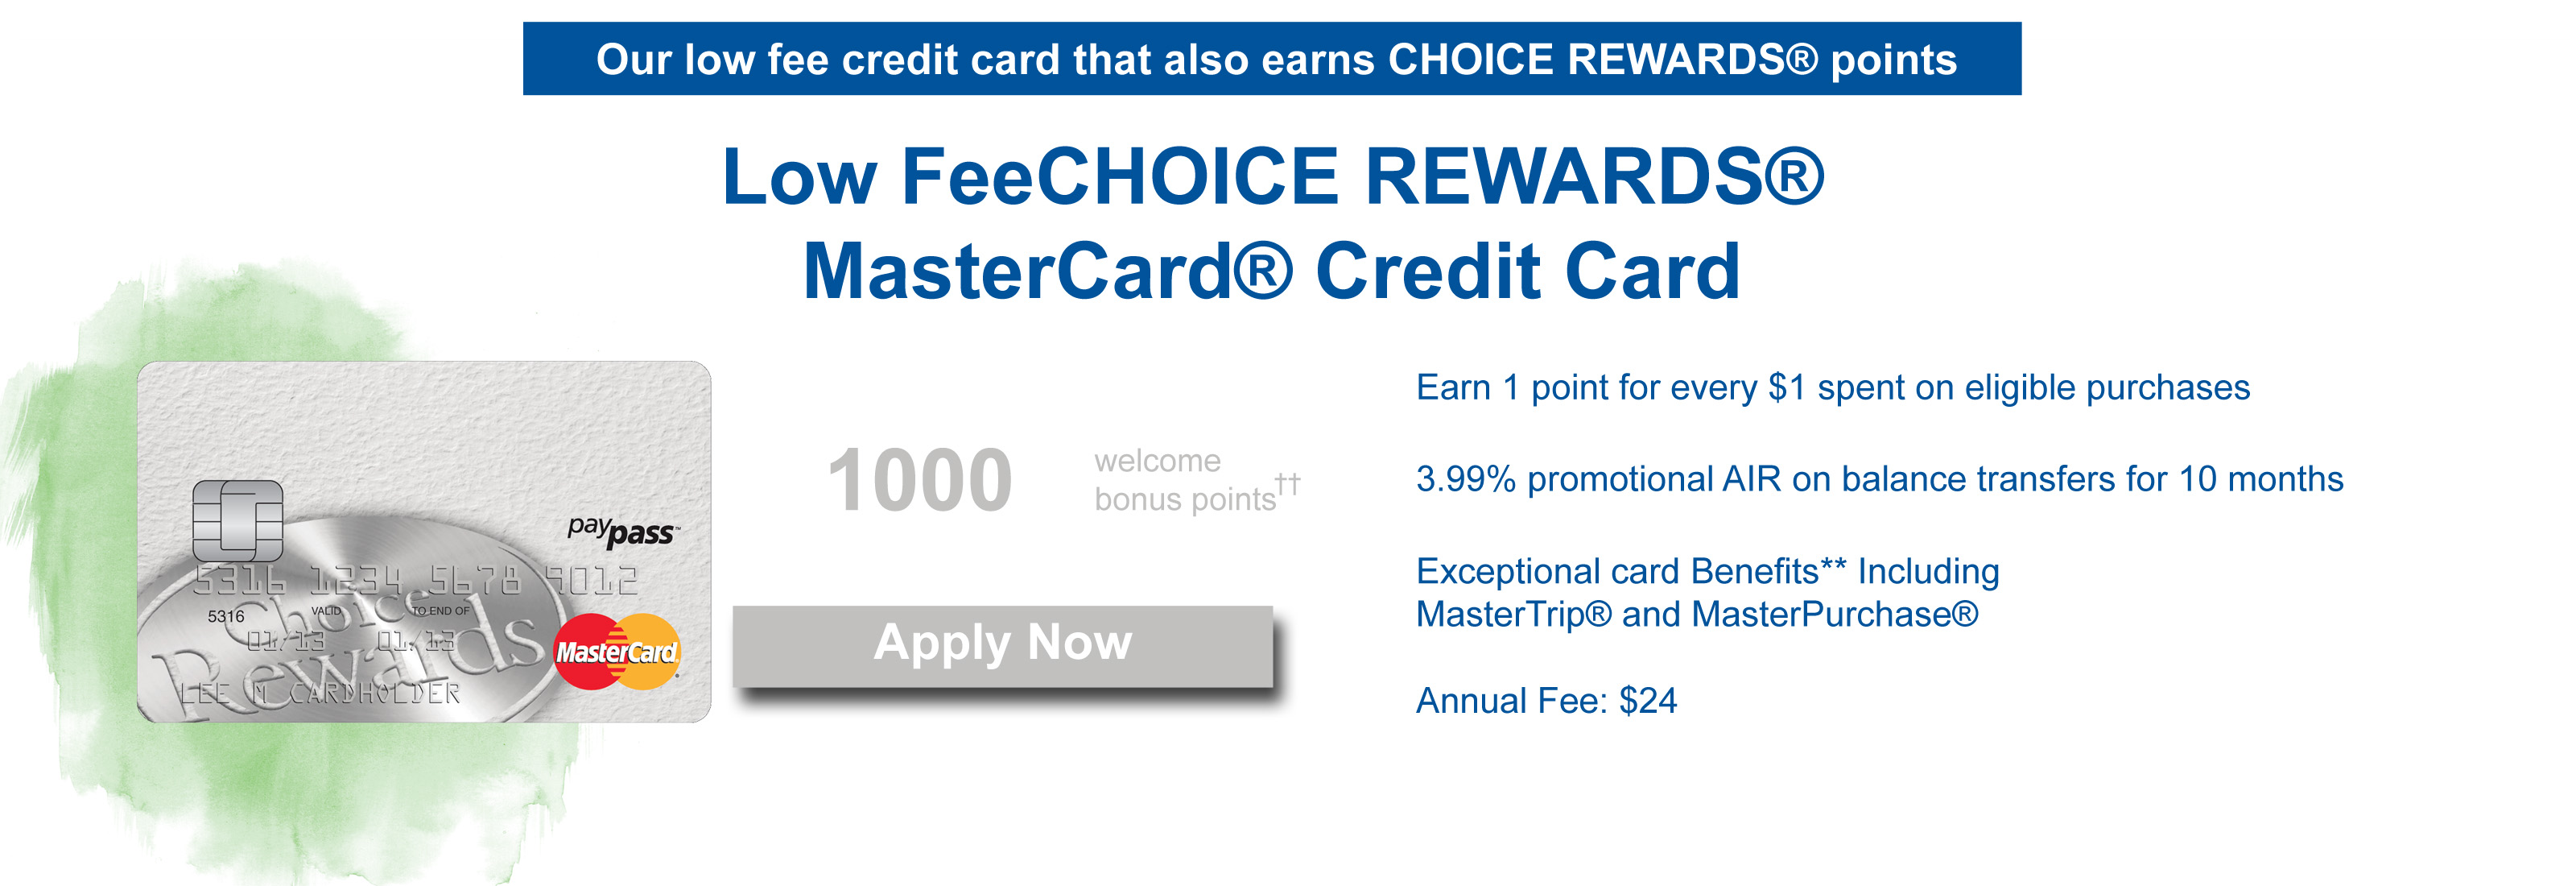 Low fee choice rewards